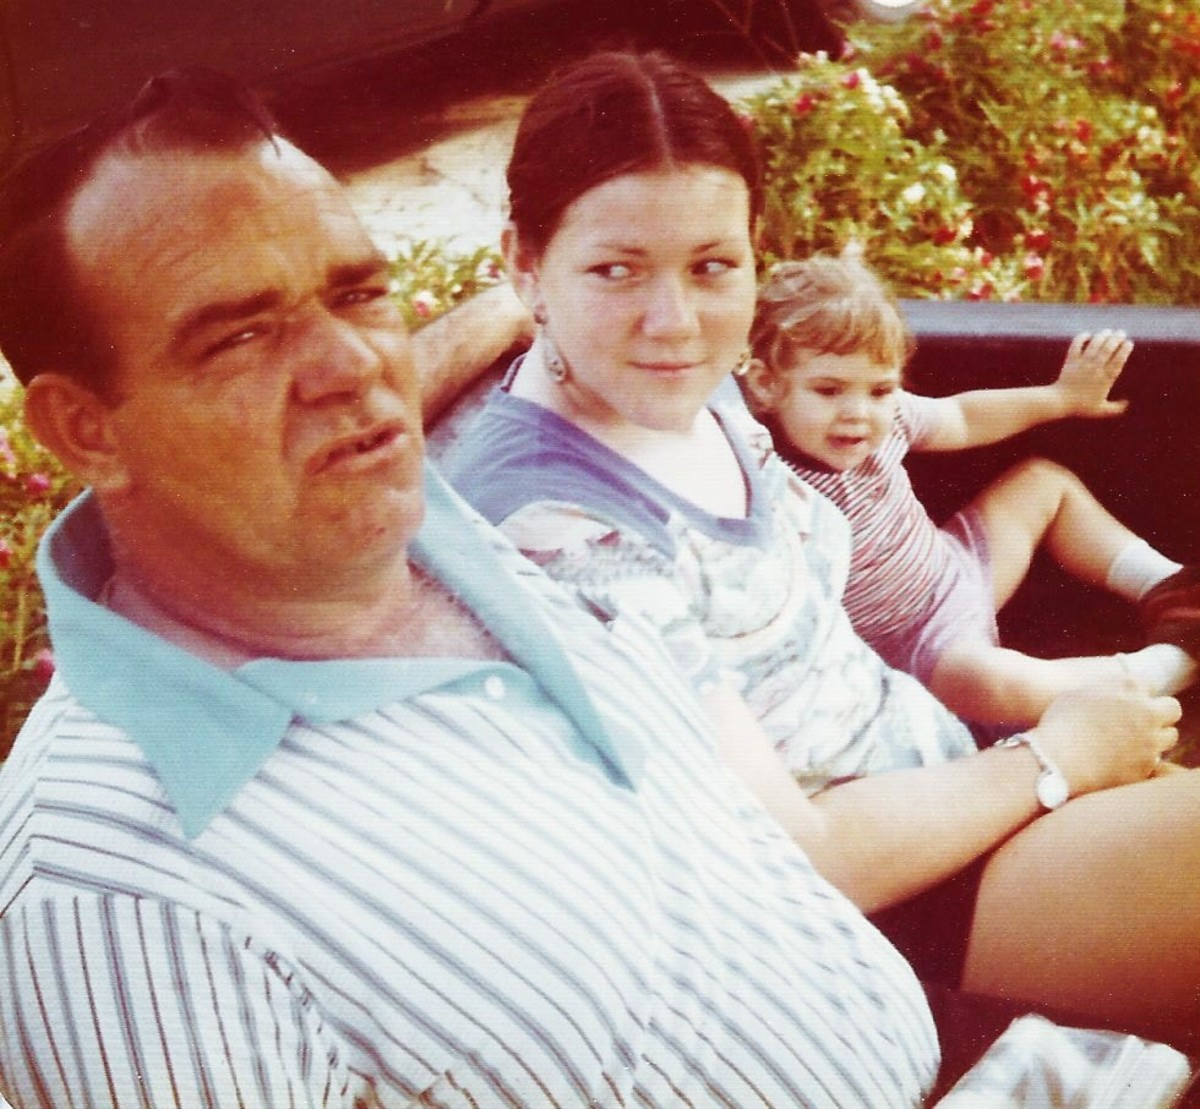 Dad in mid-story with my sister and little niece.